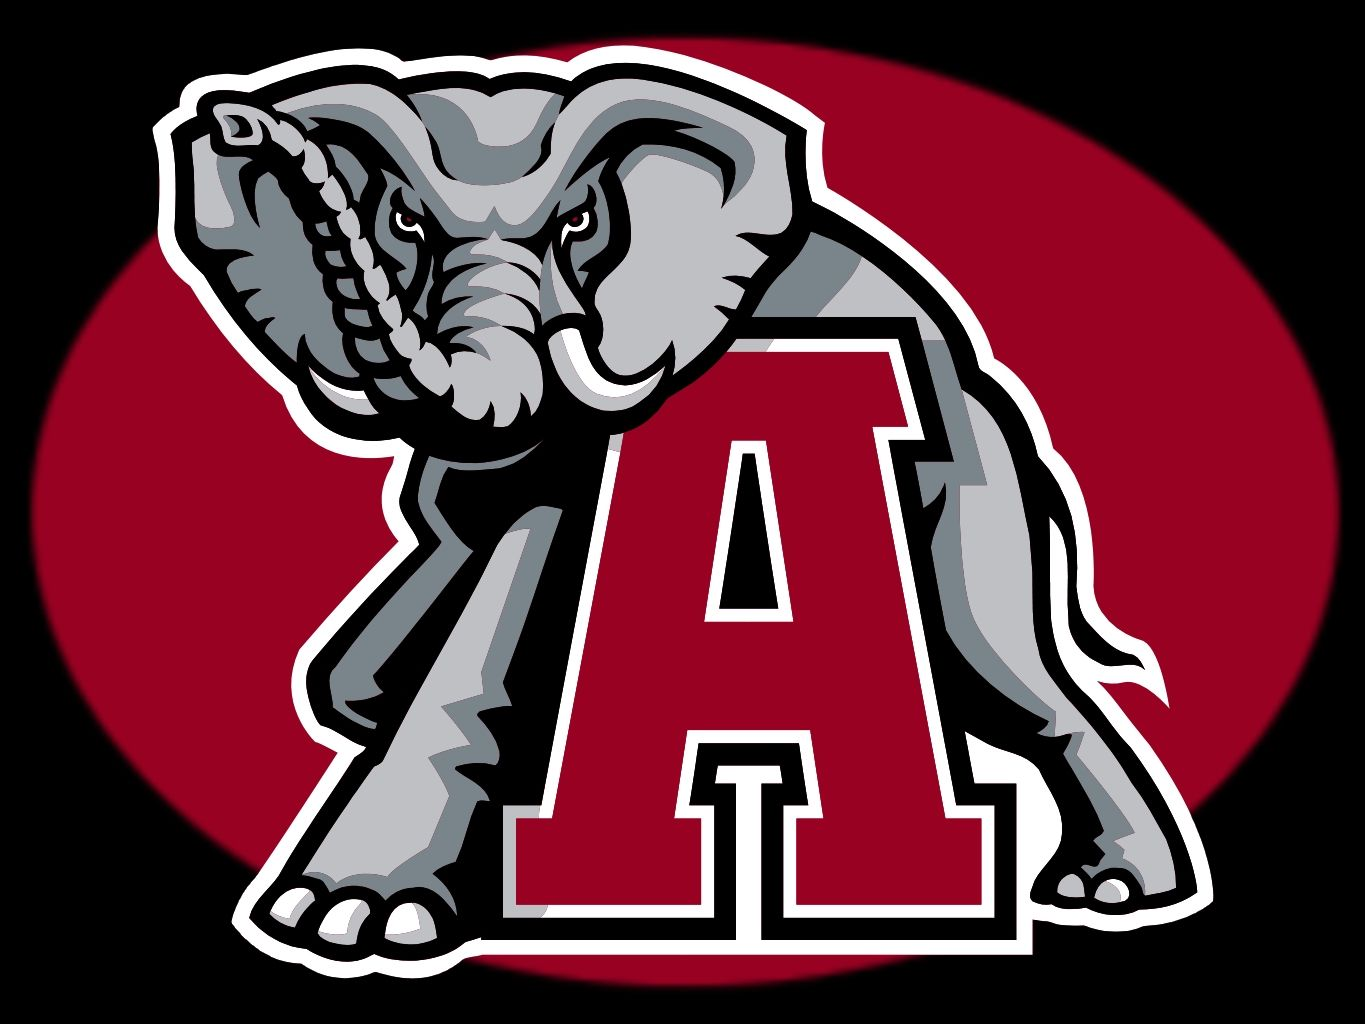 Alabama Football 3450 Wallpaper Background Widescreen In Sports